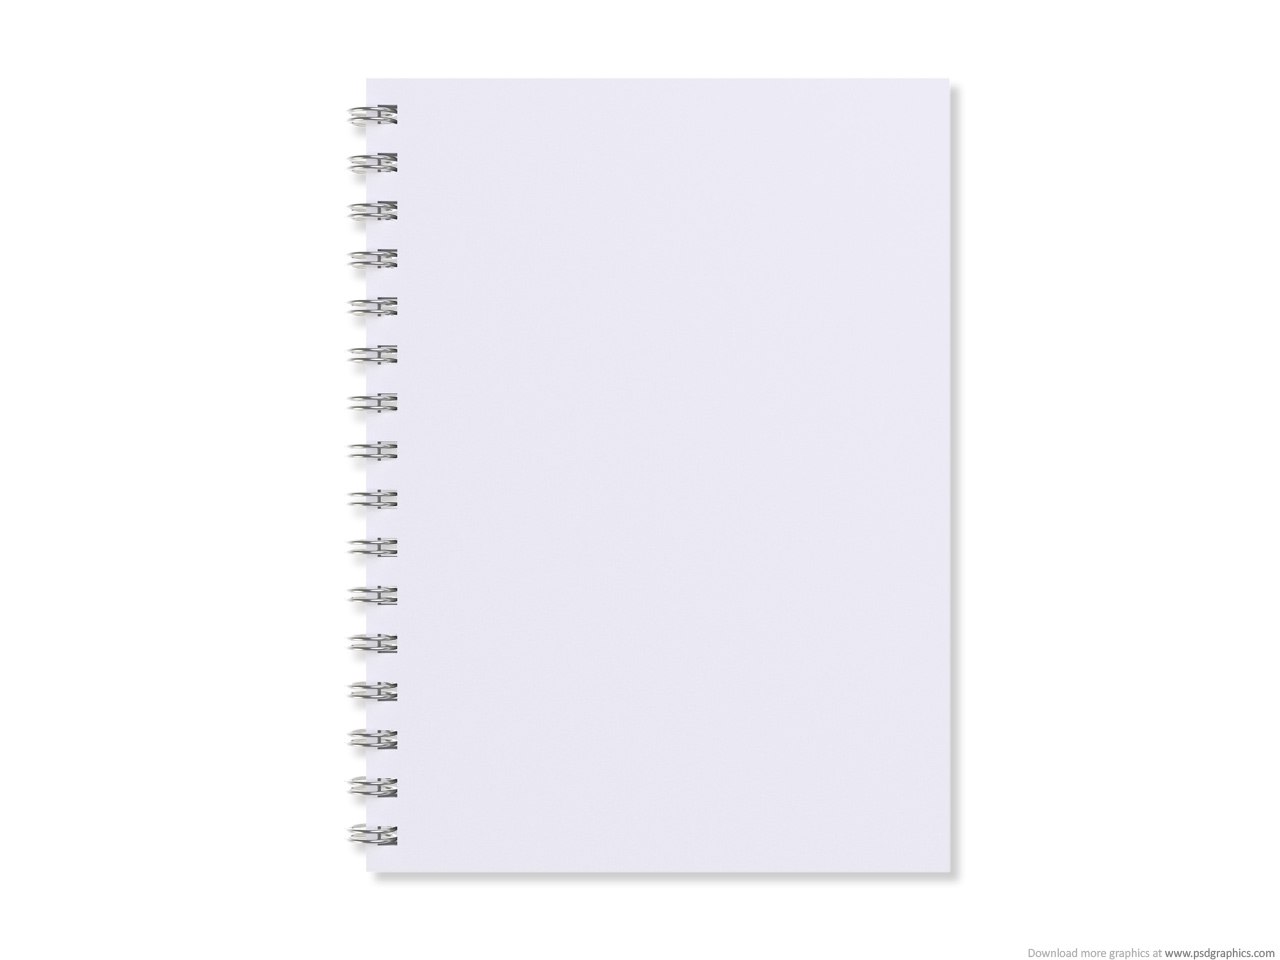 Paper Book Cover Template : Paper book cover template images memory